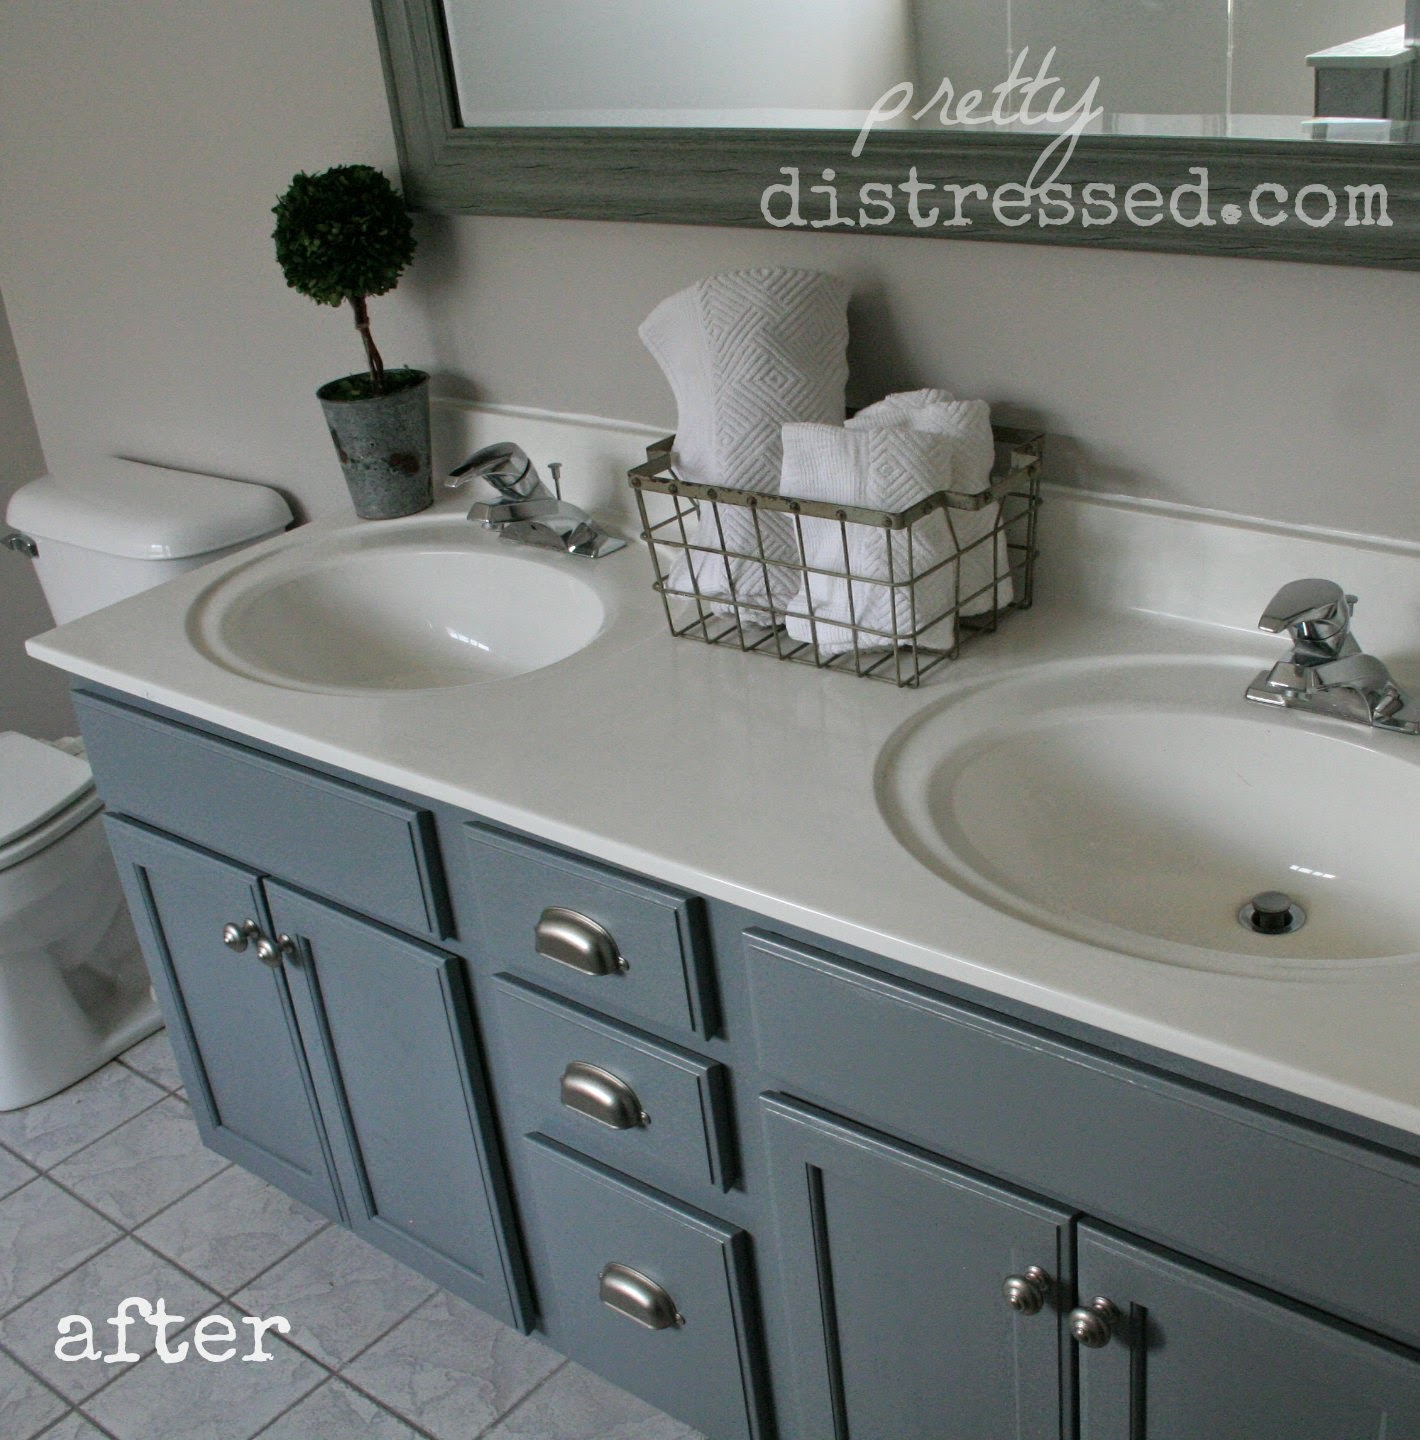 How to paint bathroom cabinets - Do You Have A Bathroom Vanity